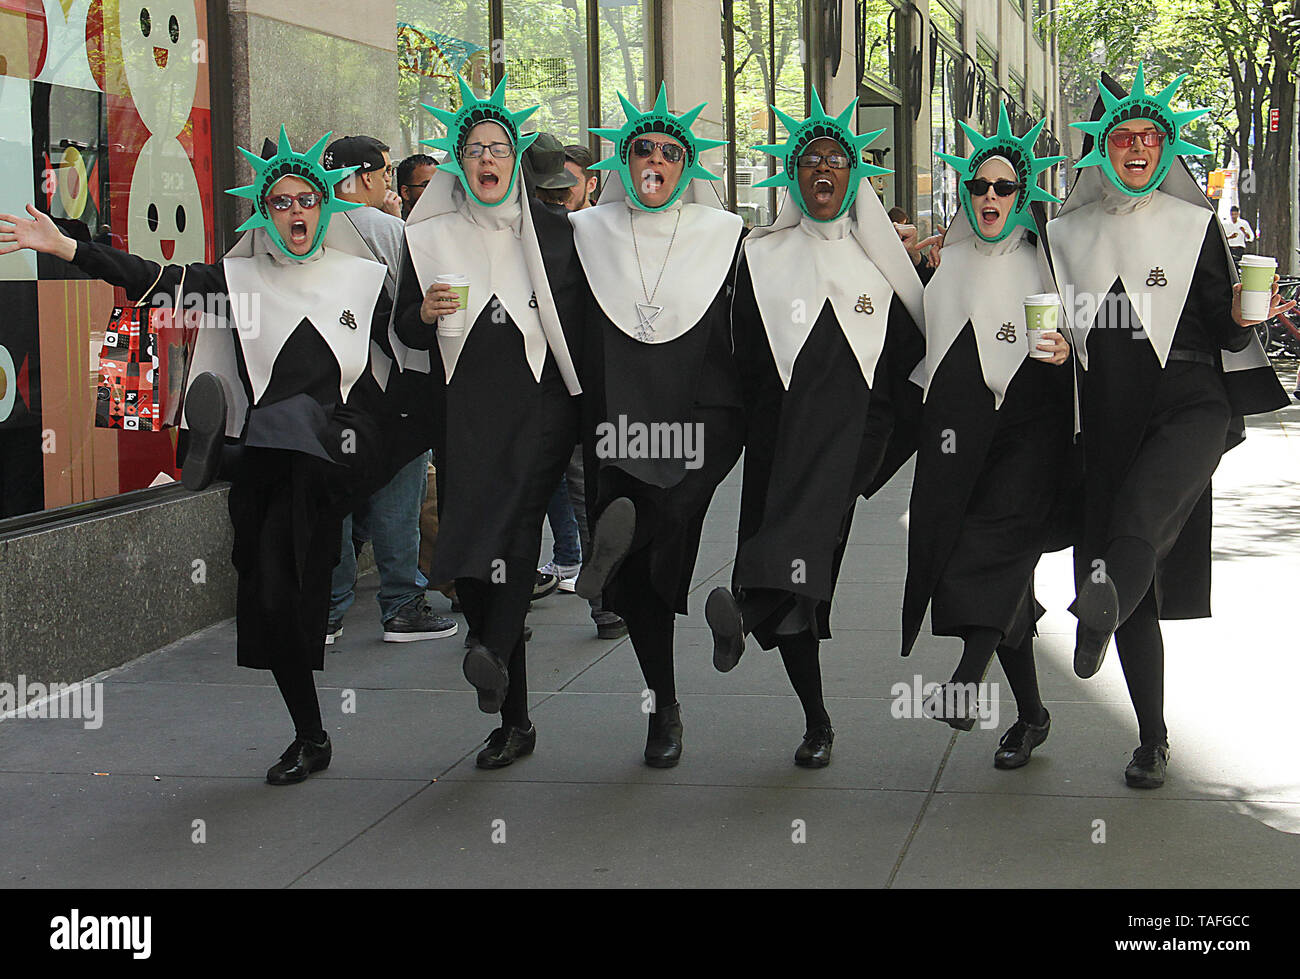 New York, NY, USA. 24th May, 2019. Evil Nuns seen at NBC's Today Show promoting the Amazon Prime series Good Omens on May 24, 2019 in New York City. Credit: Rw/Media Punch/Alamy Live News - Stock Image